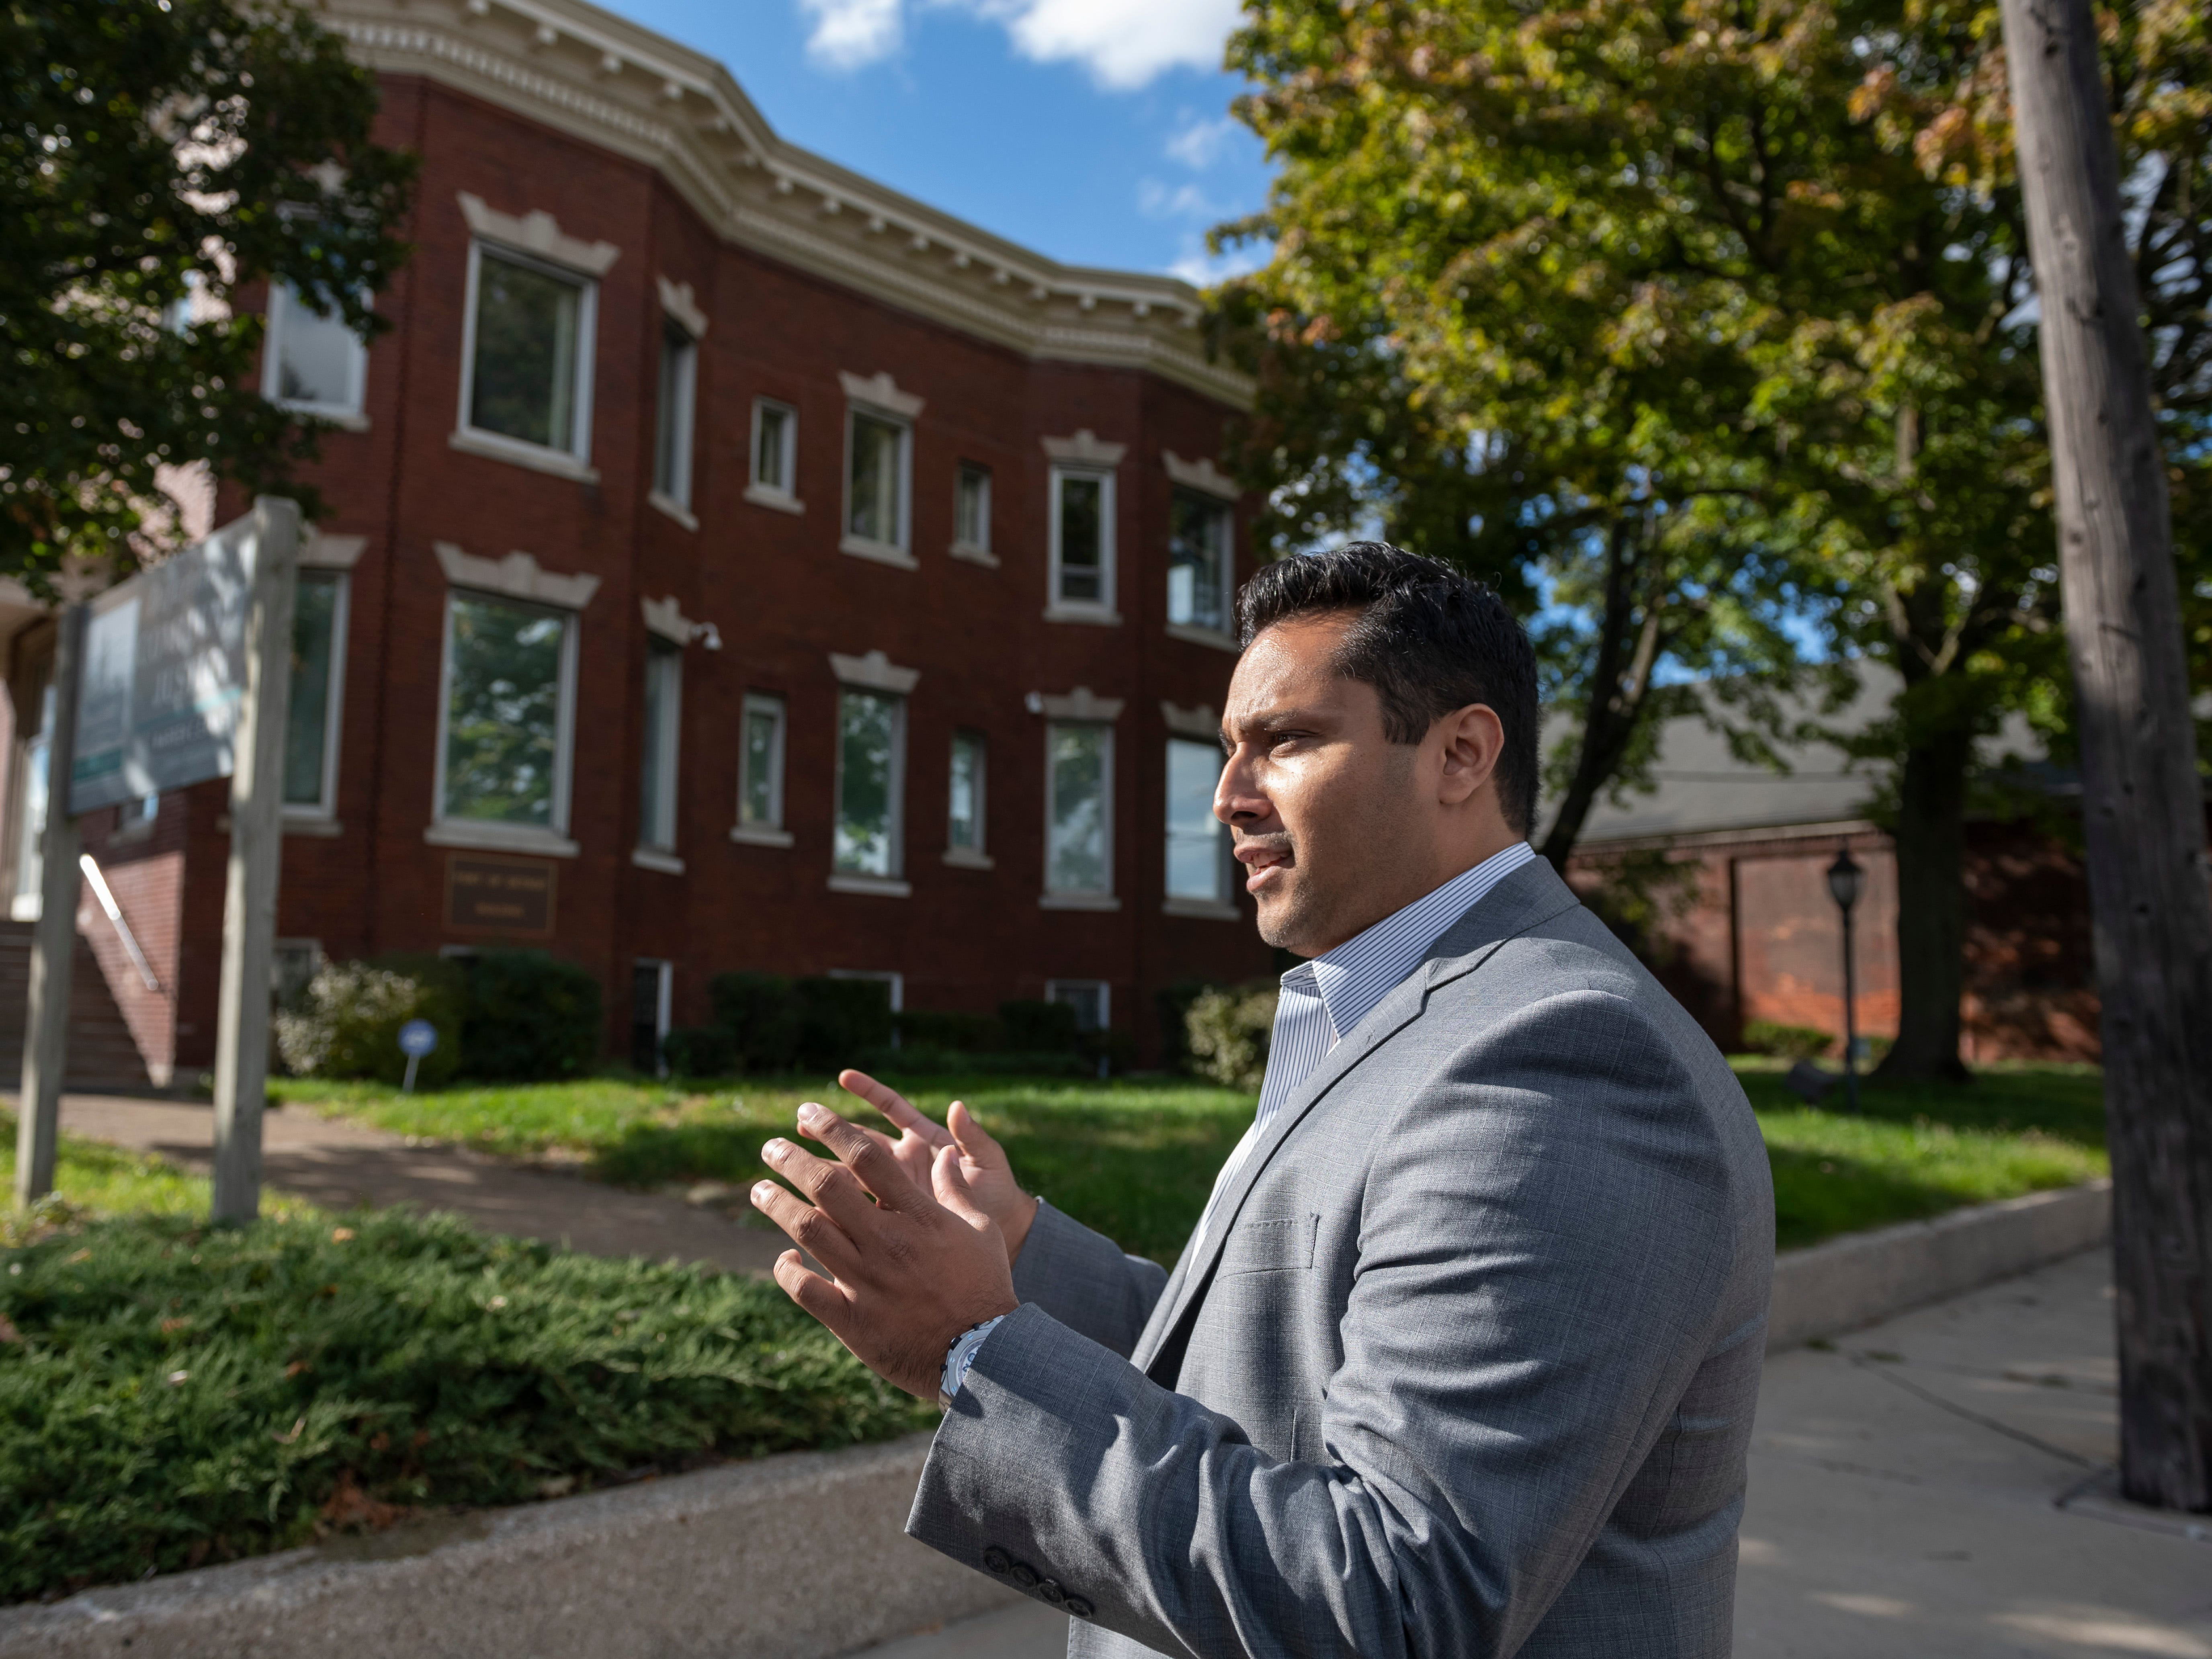 The Reef's Rush Hasan said he expects renovation of the building to be completed in February, though the state licensing process could take longer.